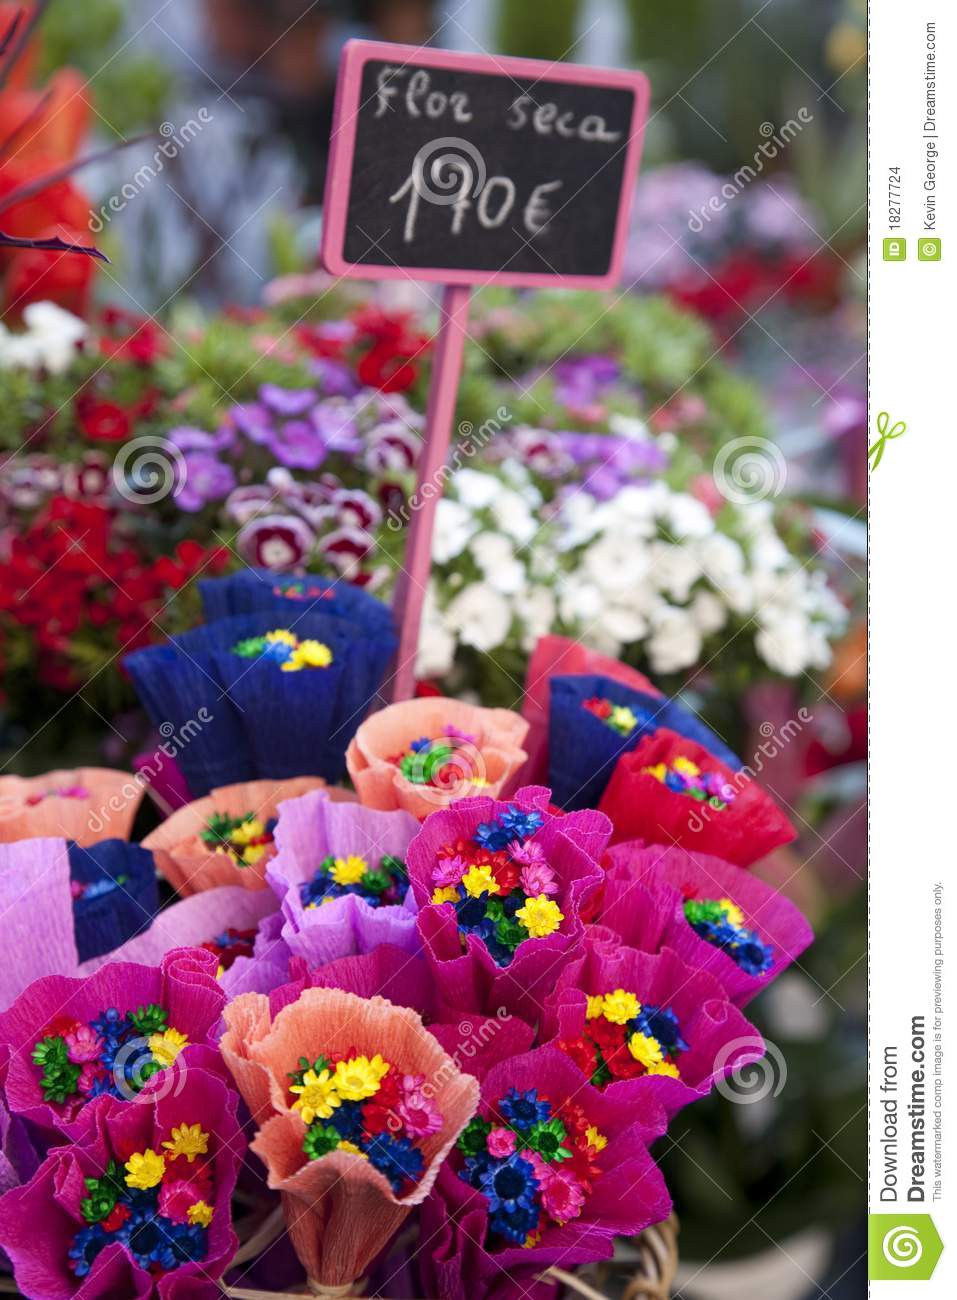 Dried Flowers For Sale Stock Photo Image Of Nature Price 18277724